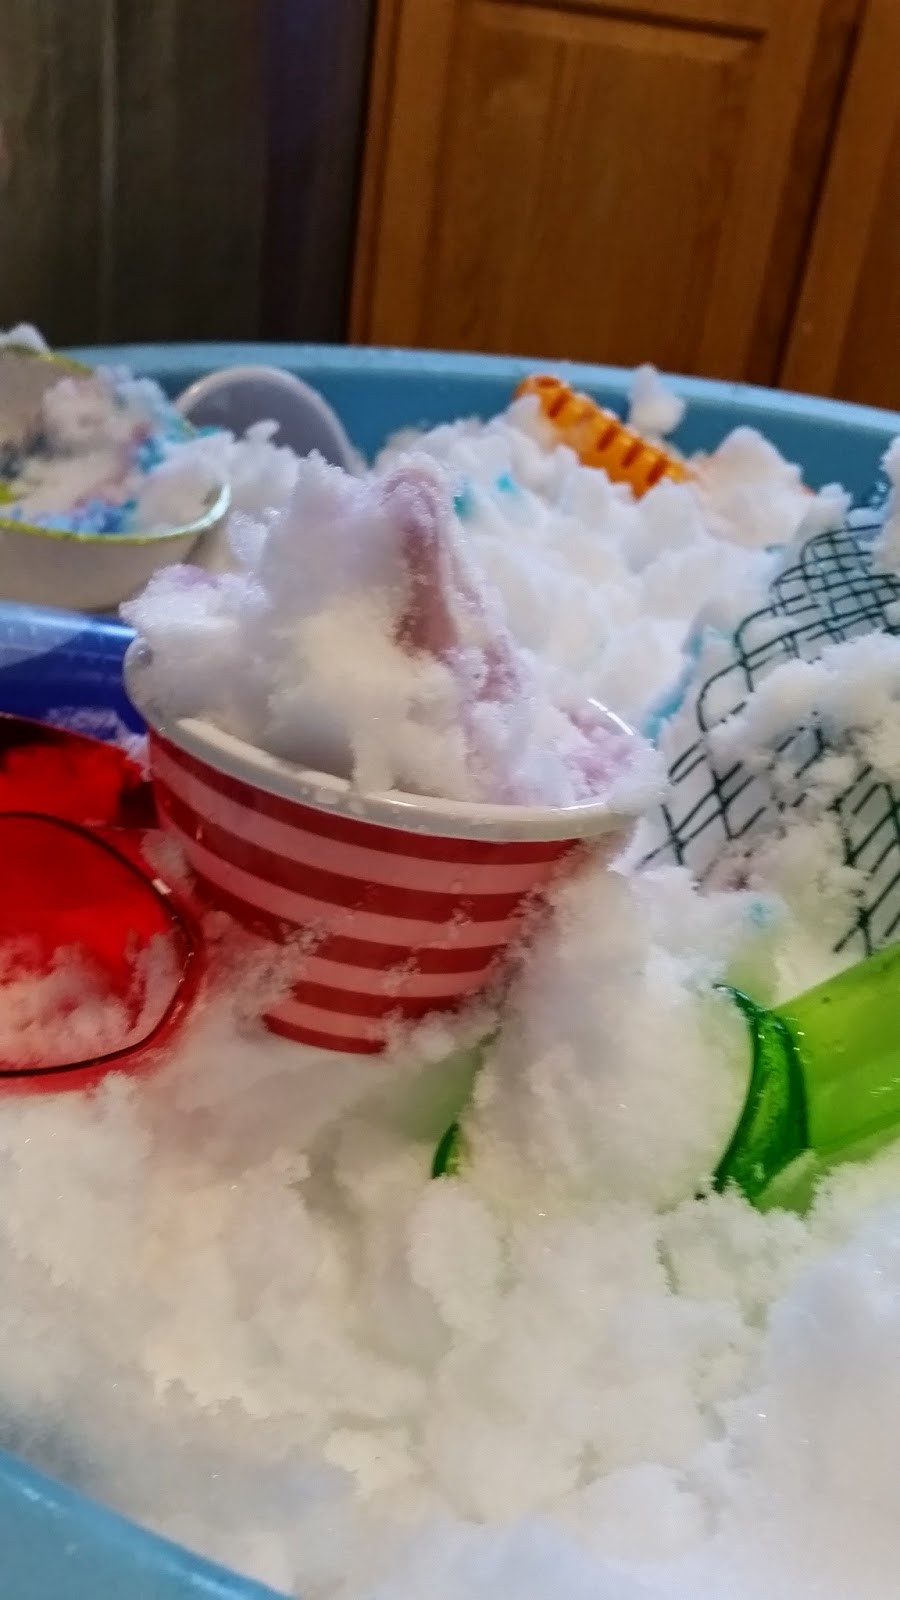 scoops, bowls and colored water for playing ice cream shop